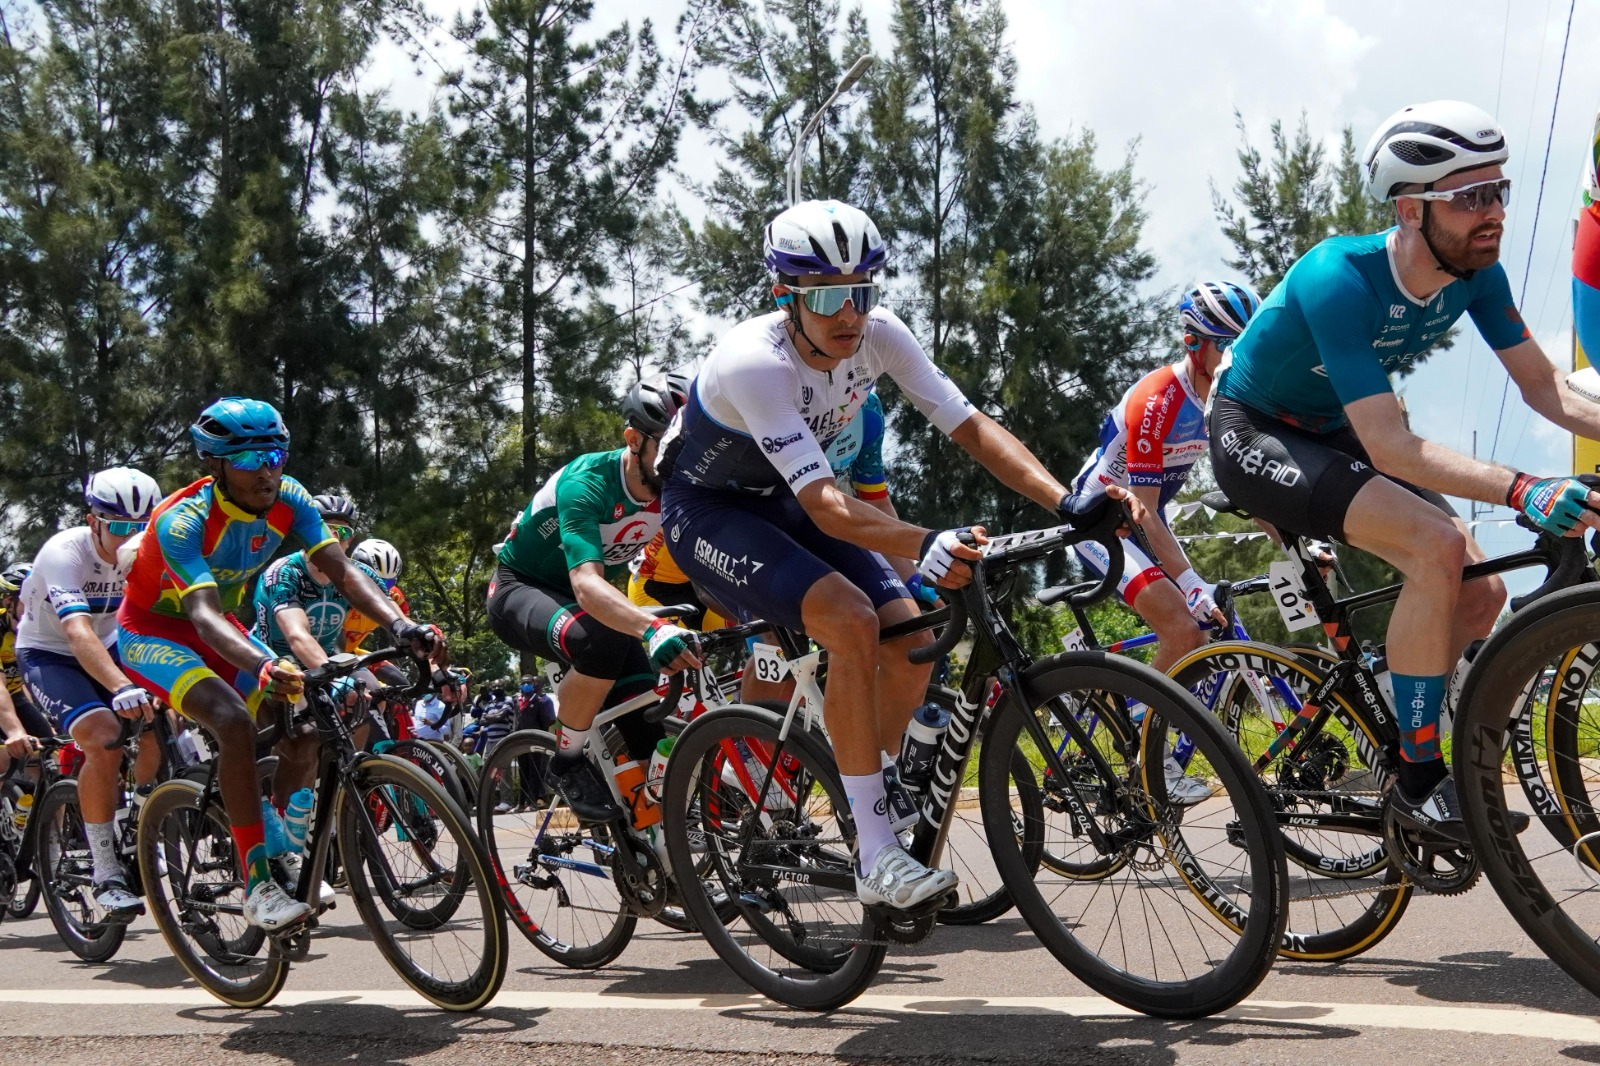 Opening stage in Rwanda: Israel Start-Up Nation creates hard race and starts the hunt for GC